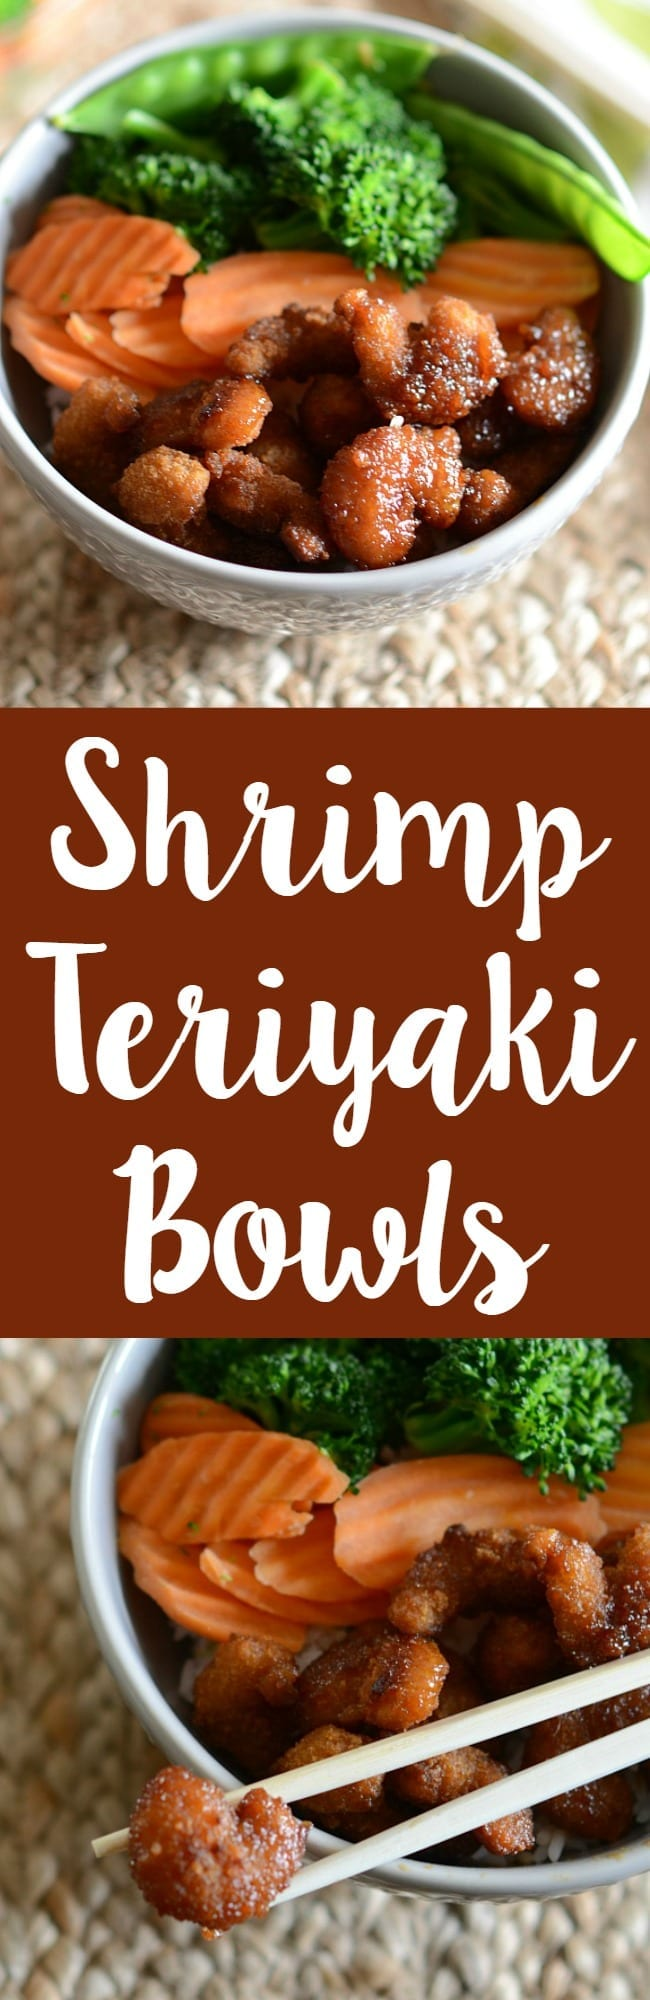 Easy and delicious shrimp teriyaki bowls! Rice on the bottom and then steamed veggies and shrimp with homemade teriyaki sauce!